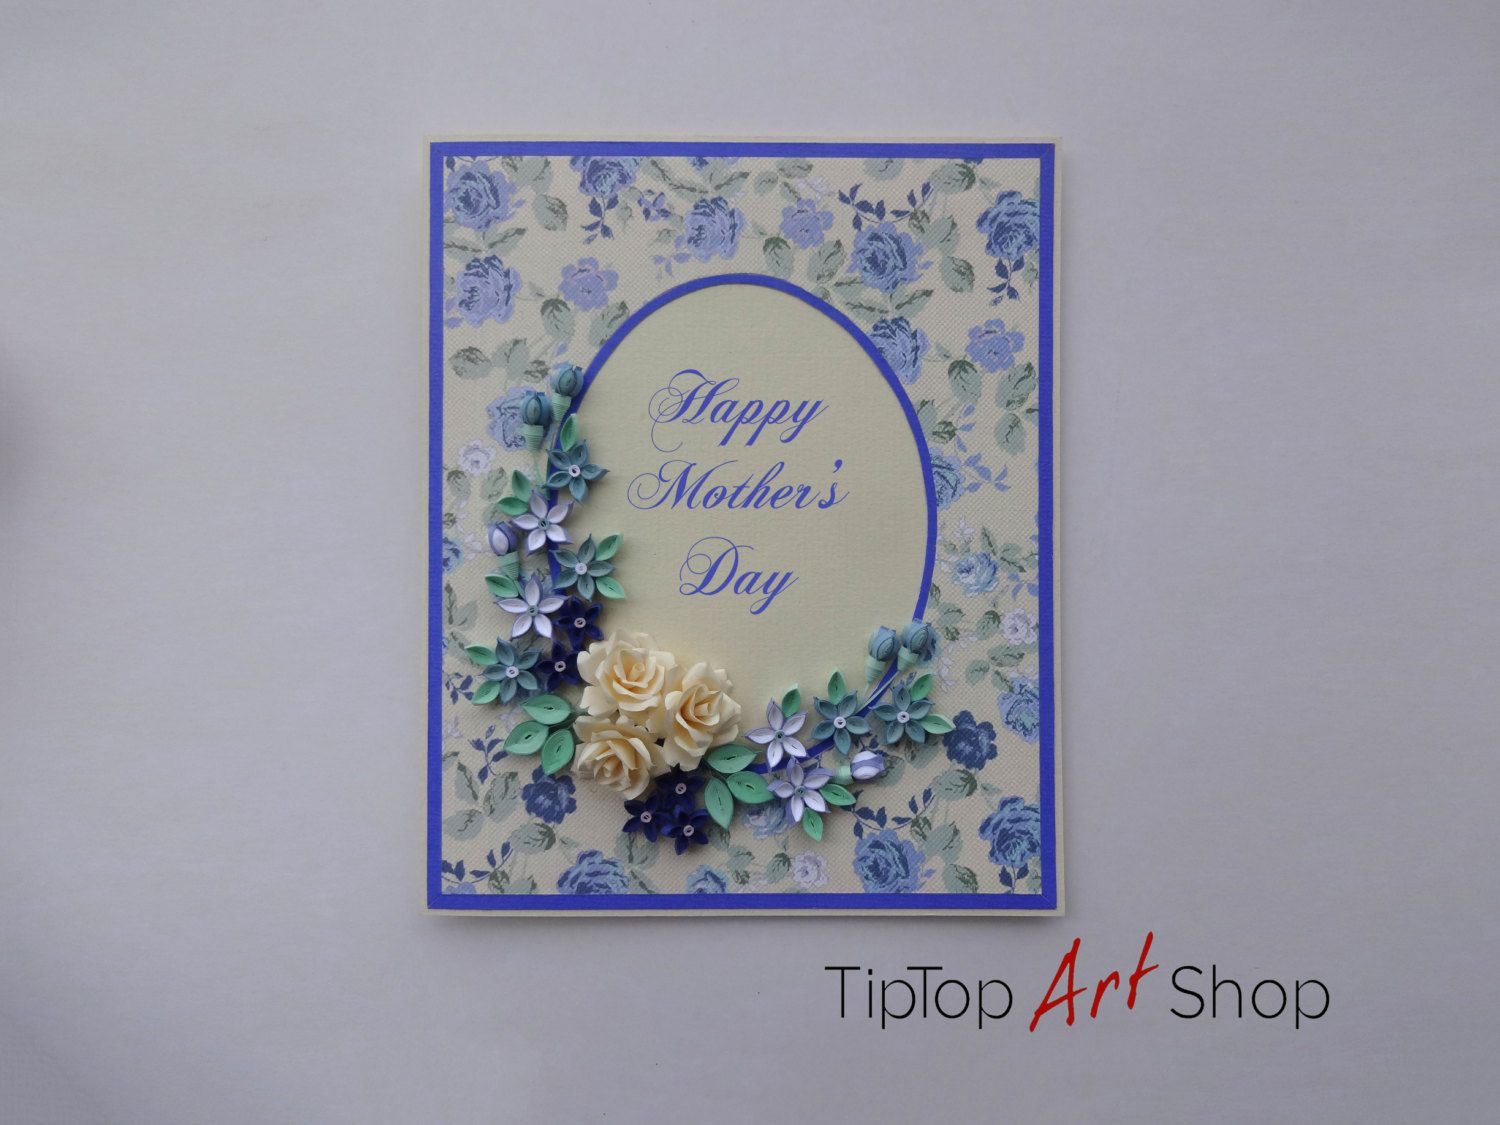 Handmade paper quilling greeting card with 3d flowers by handmade paper quilling greeting card with 3d flowers by tiptopartshop on etsy kristyandbryce Images